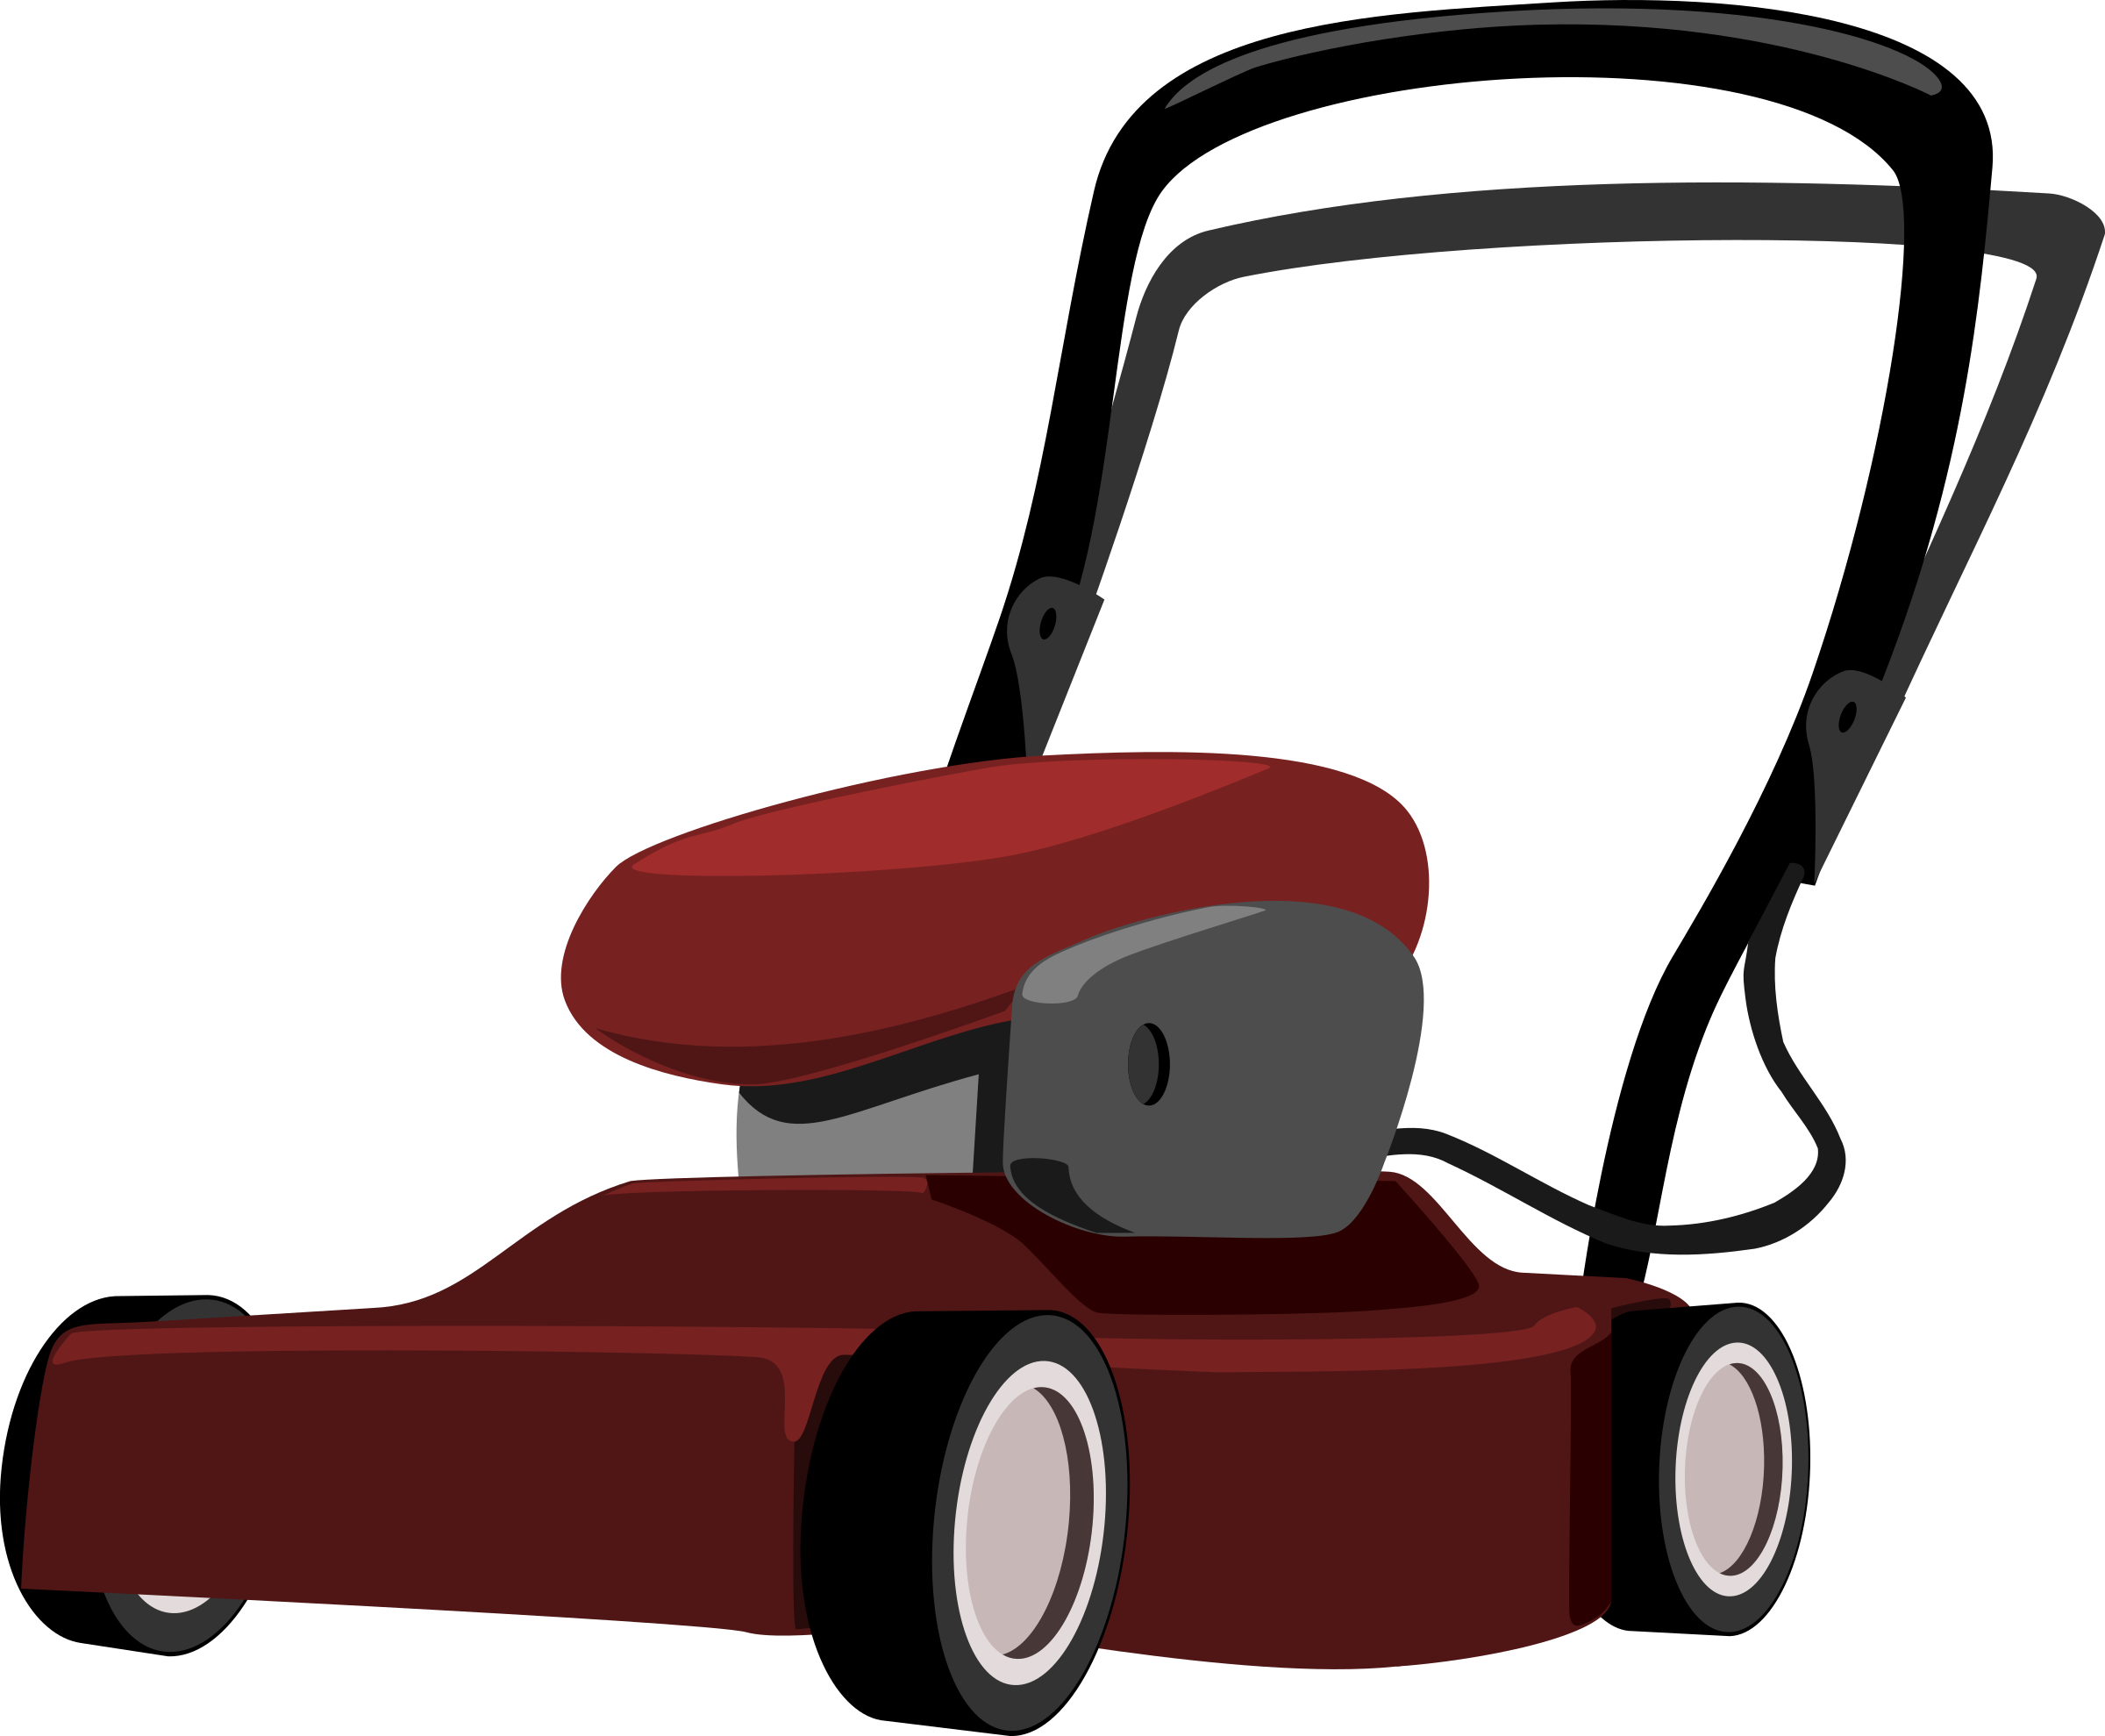 clipart free Big image png. Lawn mower clipart.